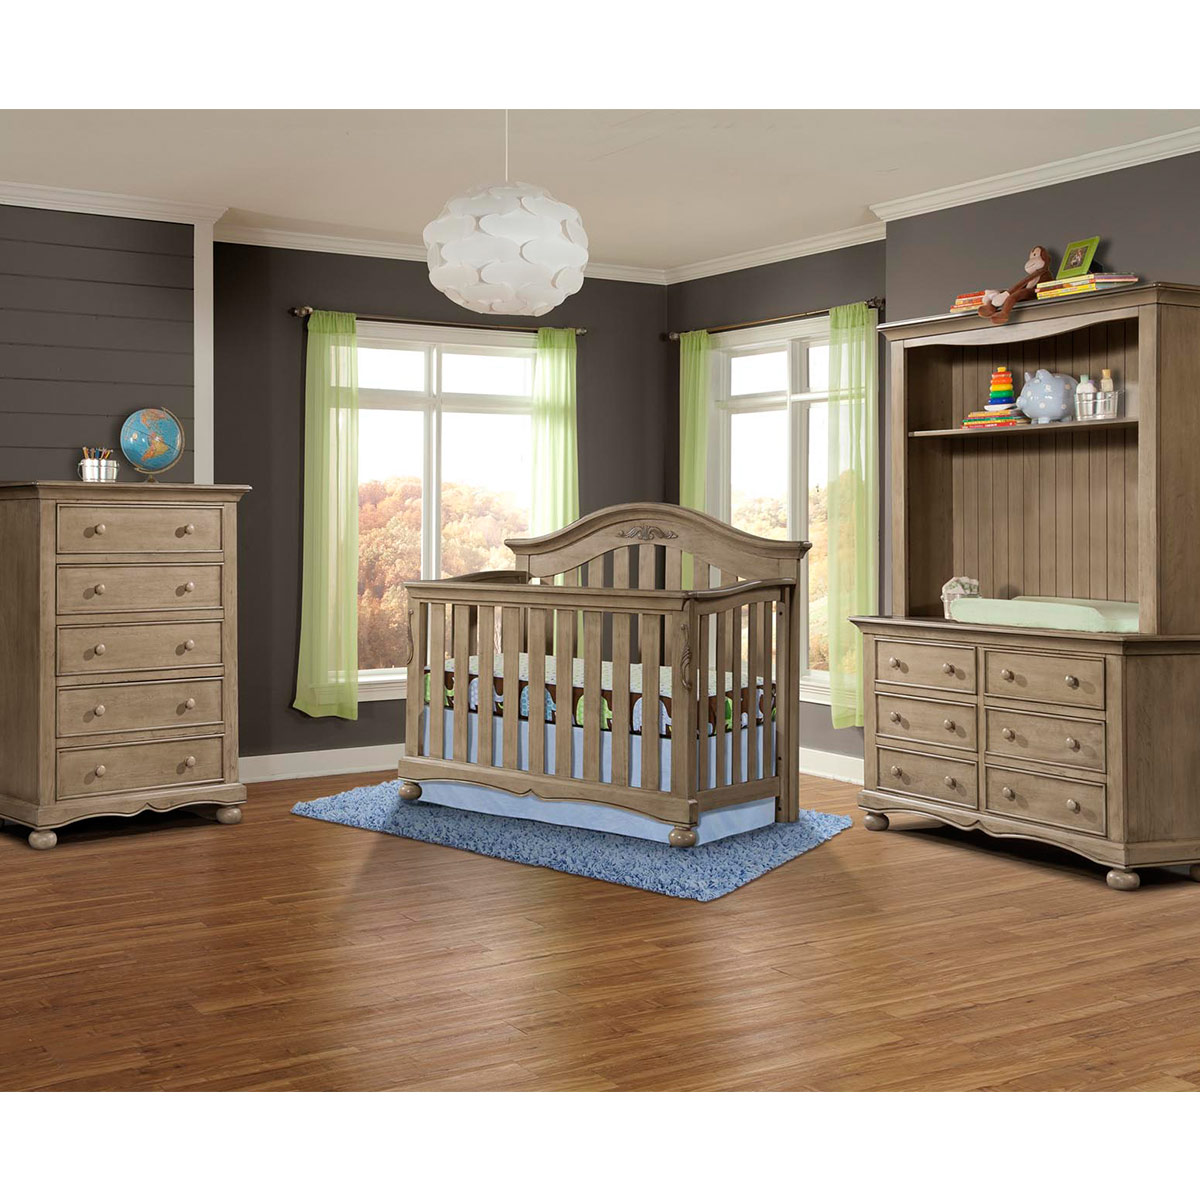 island staten stone westwood nj crib ny baby convertible new nursery york black vendor collections cribs jersey harbor